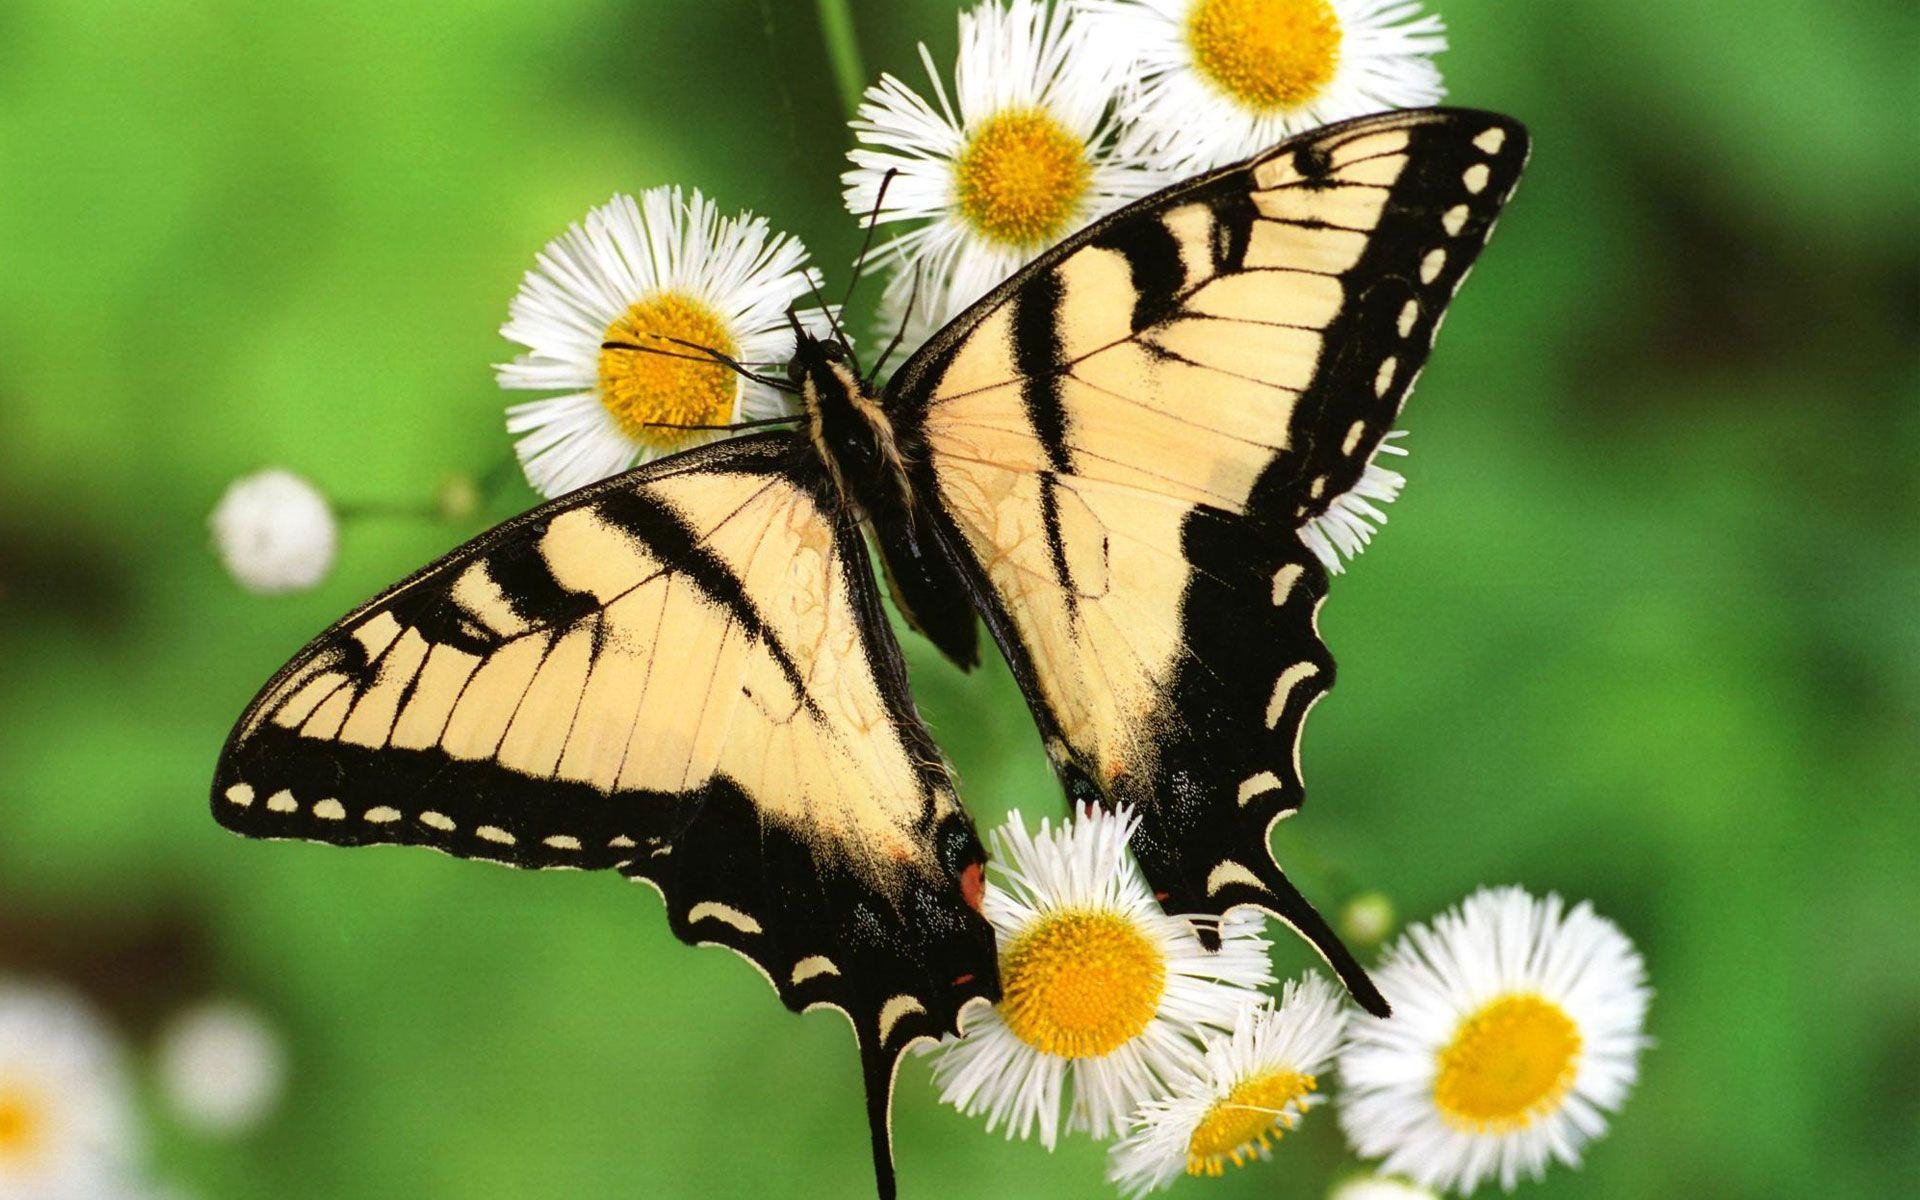 Tiger Swallowtail Butterfly Wallpaper - http://www.56pic.com ...